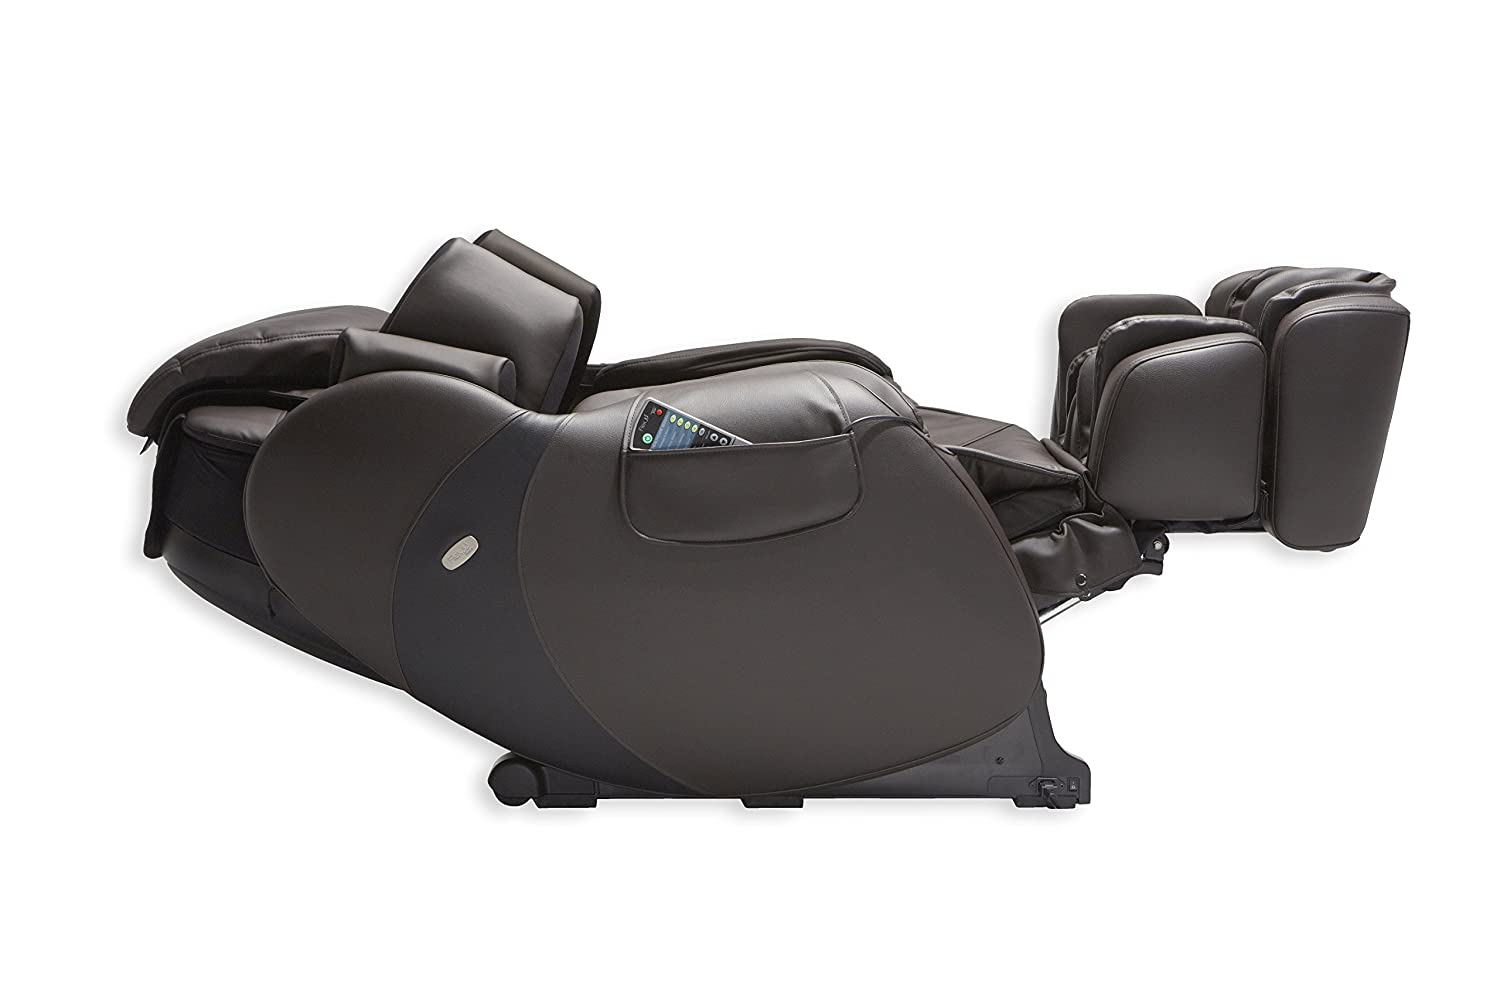 amazoncom inada hcps373 br flex 3s massage chair dark brown health u0026 personal care